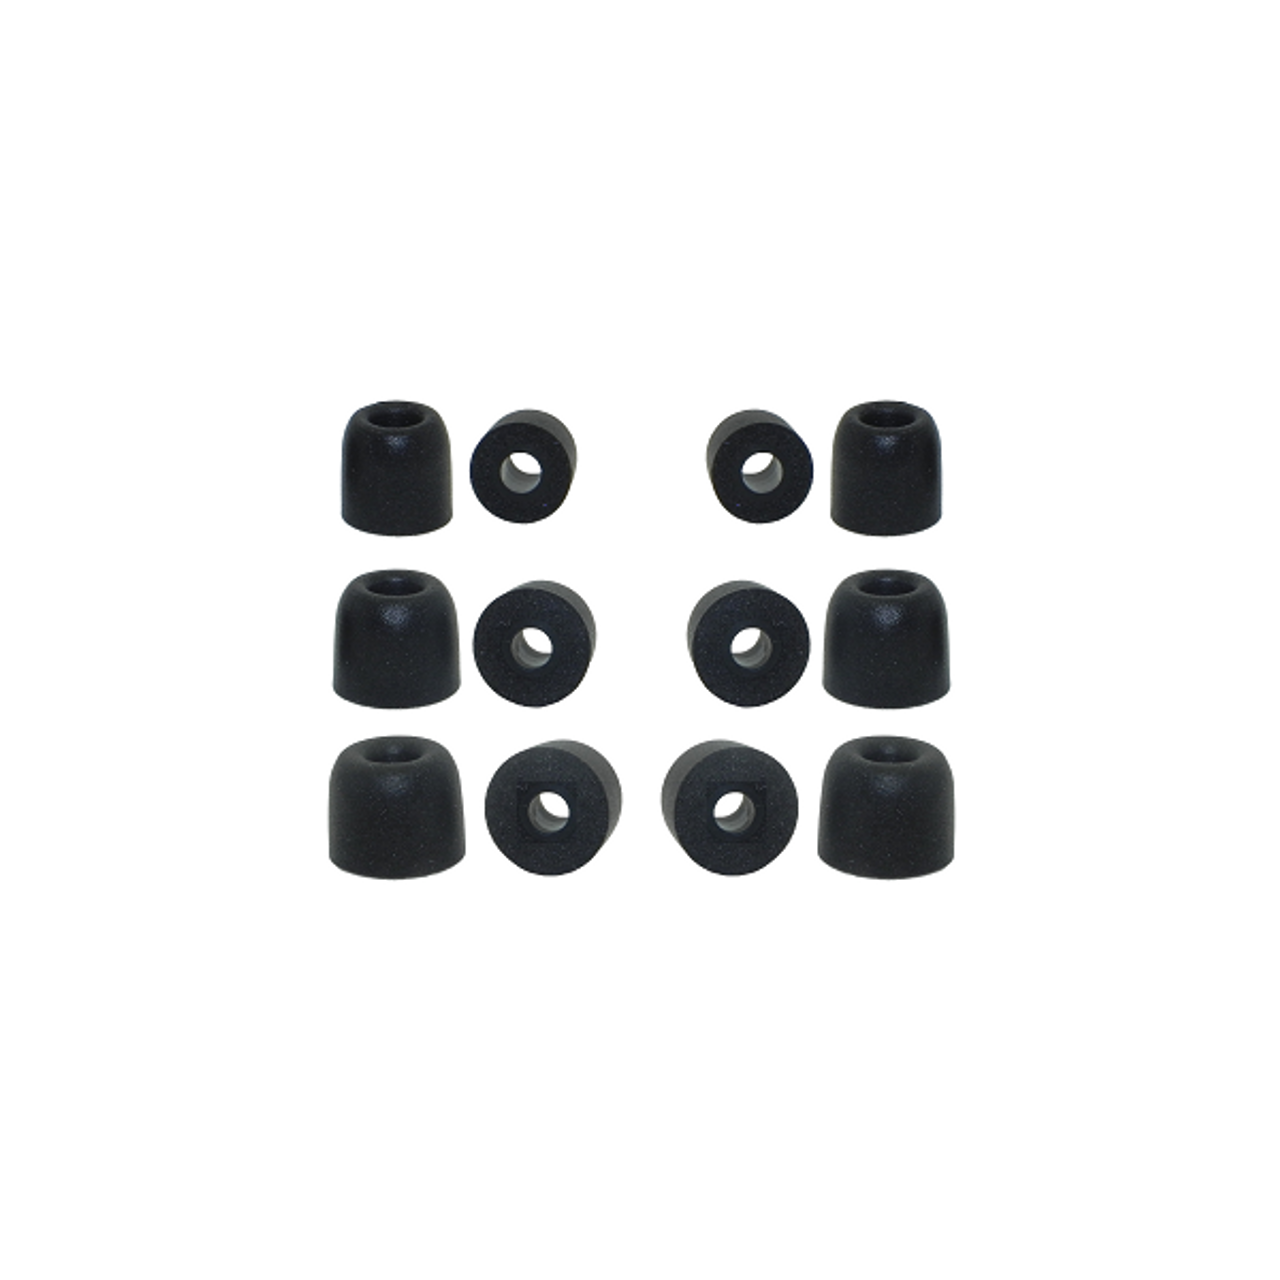 3 pairs Black 3.8mm Triple Flange Replacement Silicone In Ear Tips Earbuds AKG